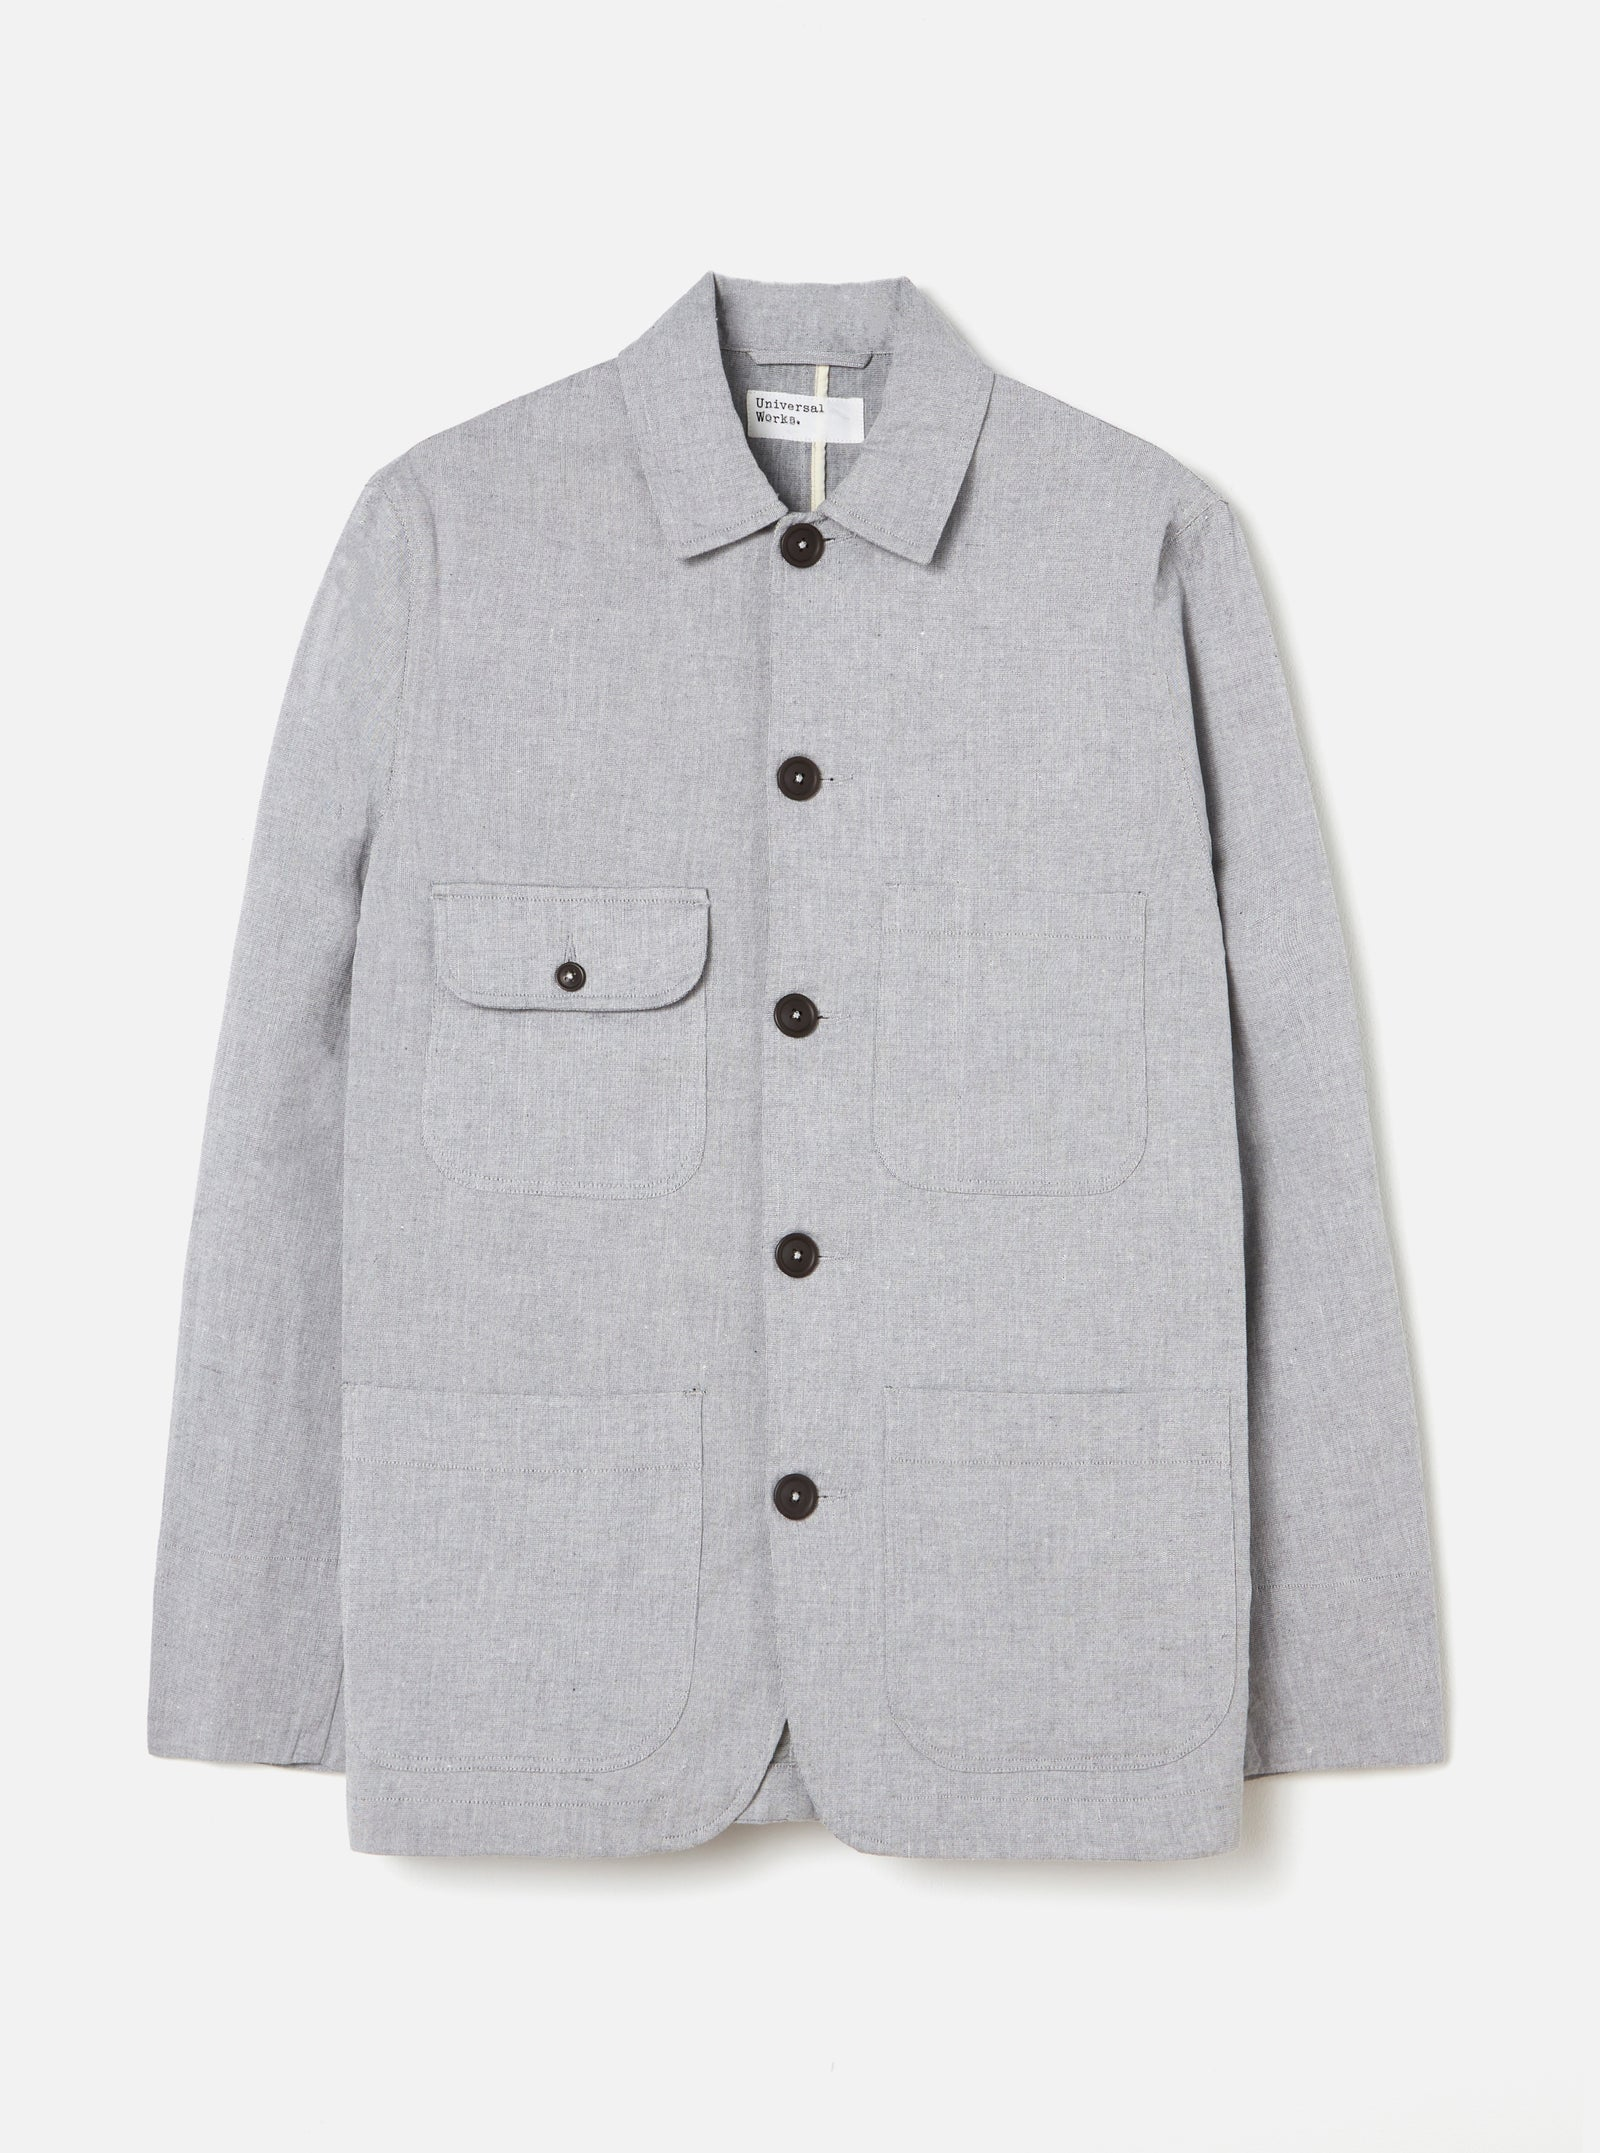 Universal Works DR Work Jacket in Grey Fine Weave